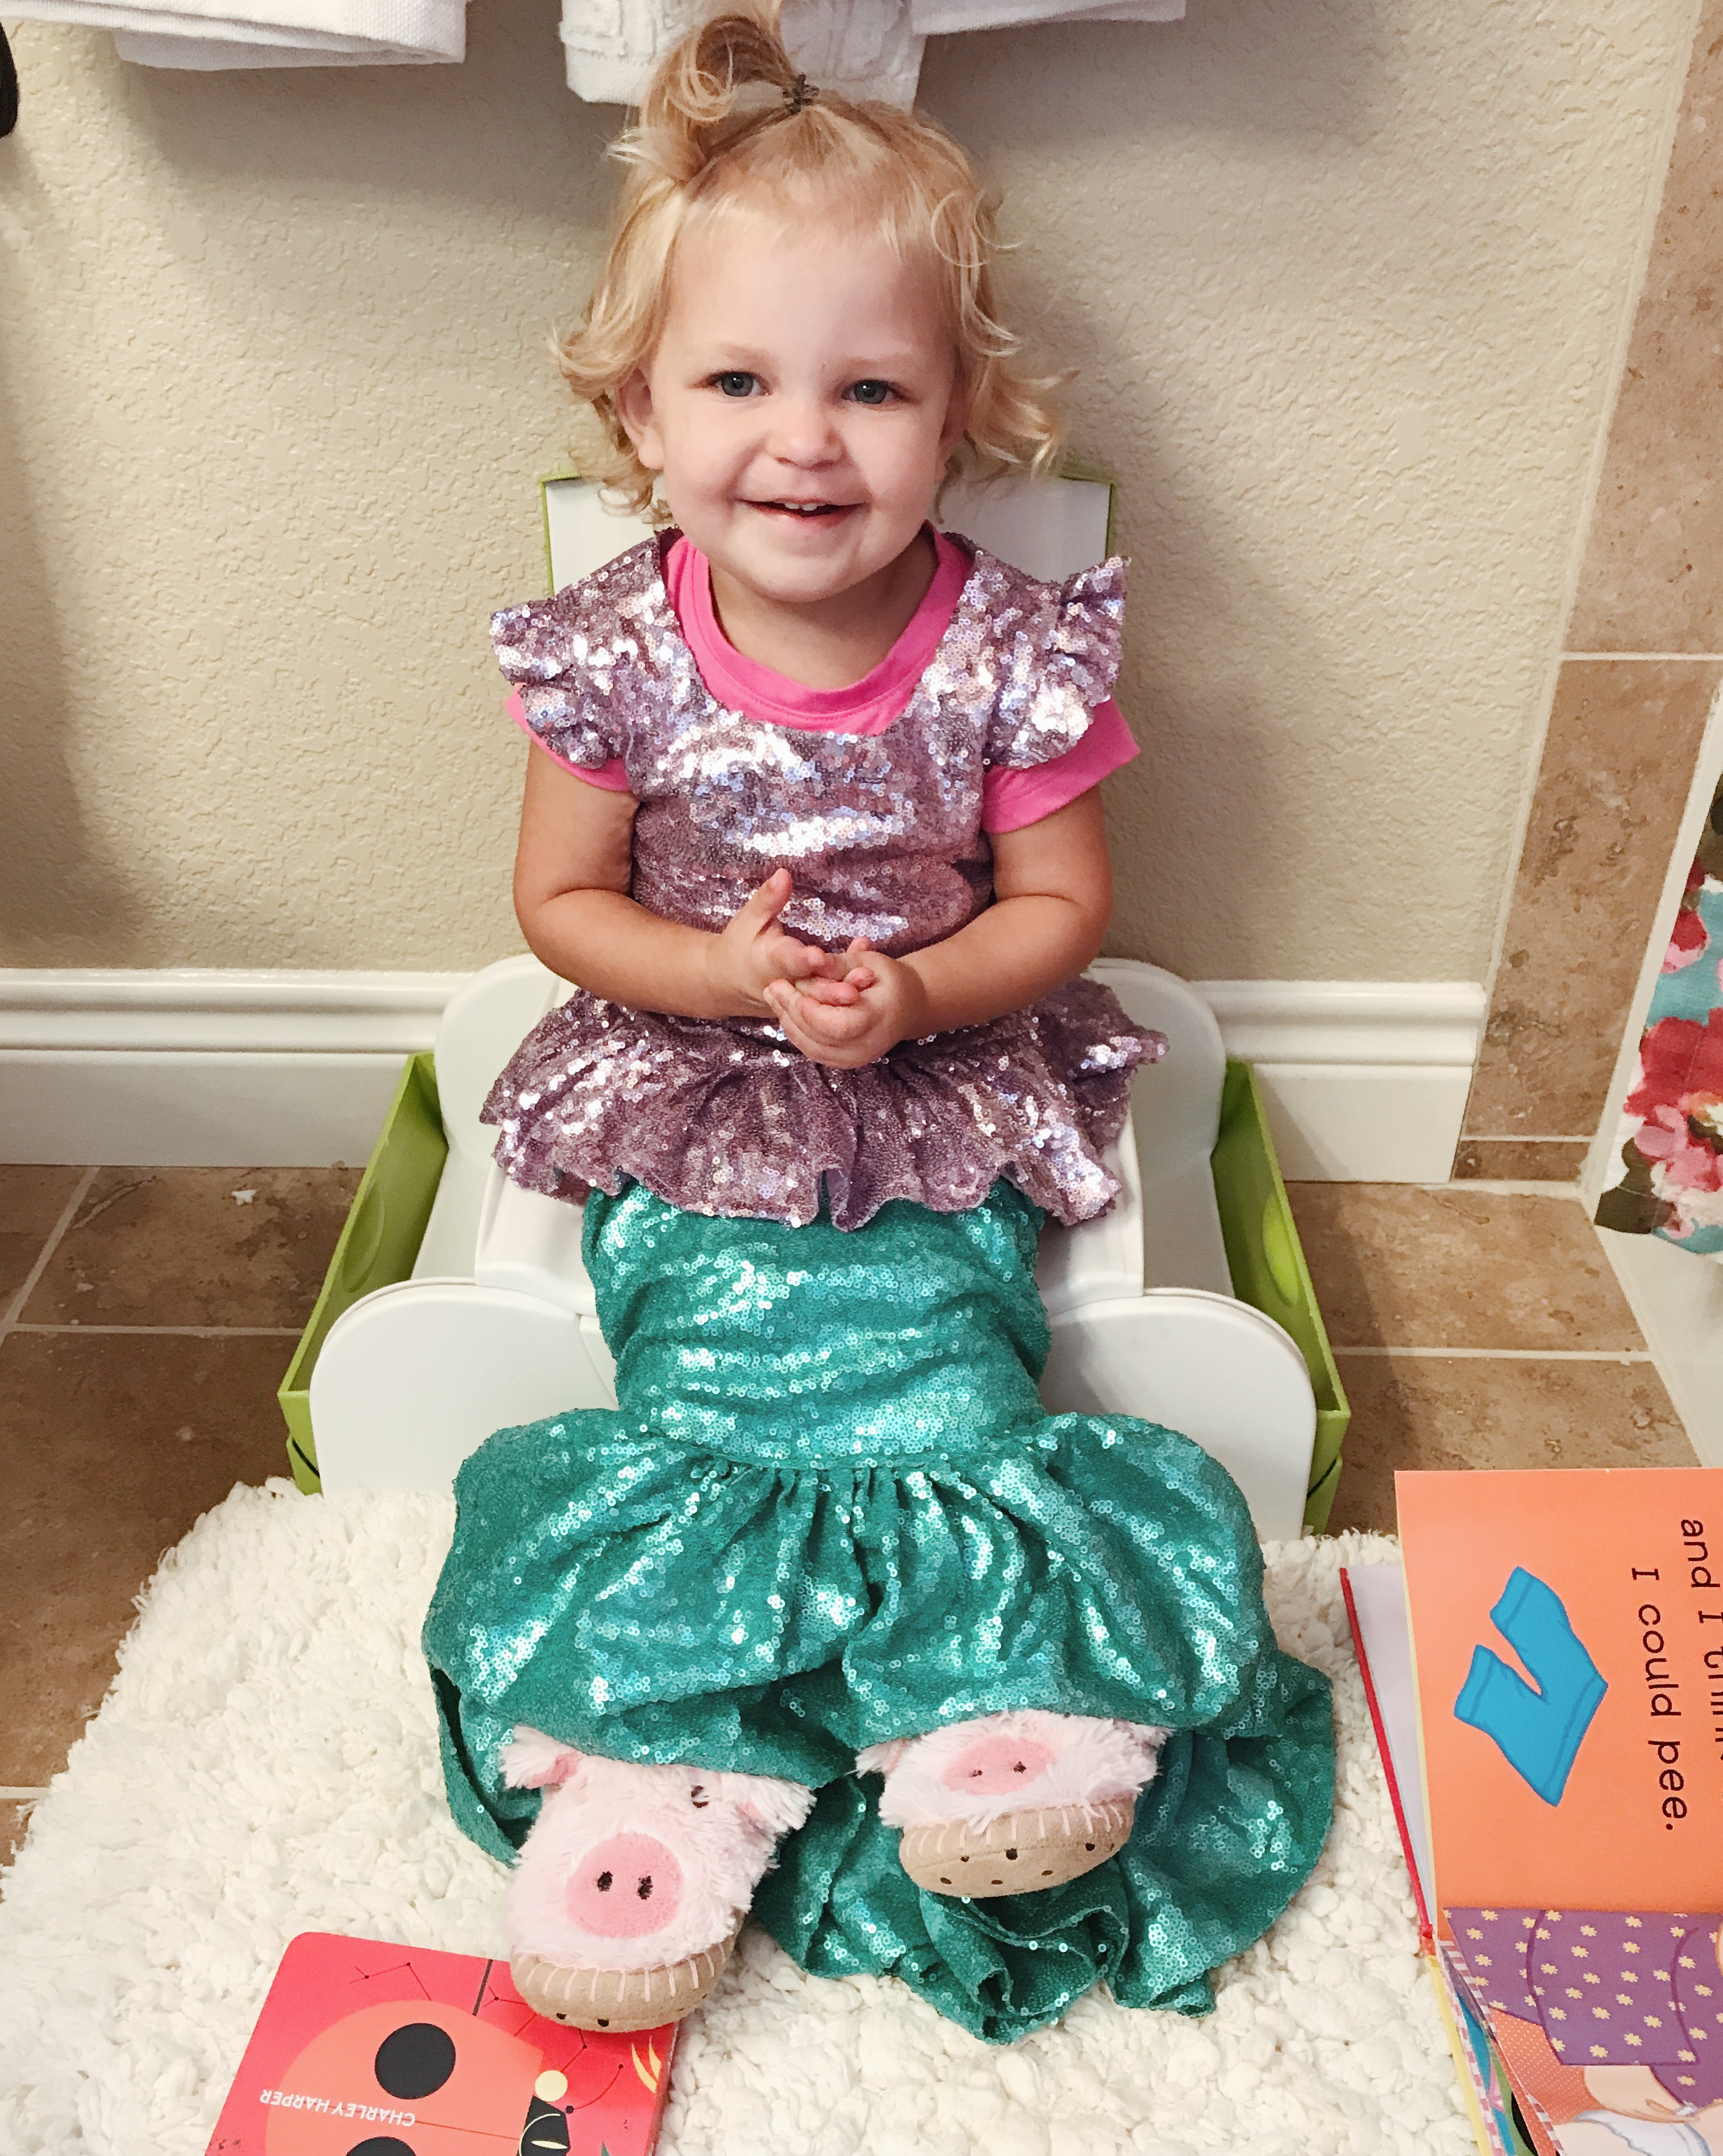 everything you need for potty training successfully | Foolproof Guide to Potty Training